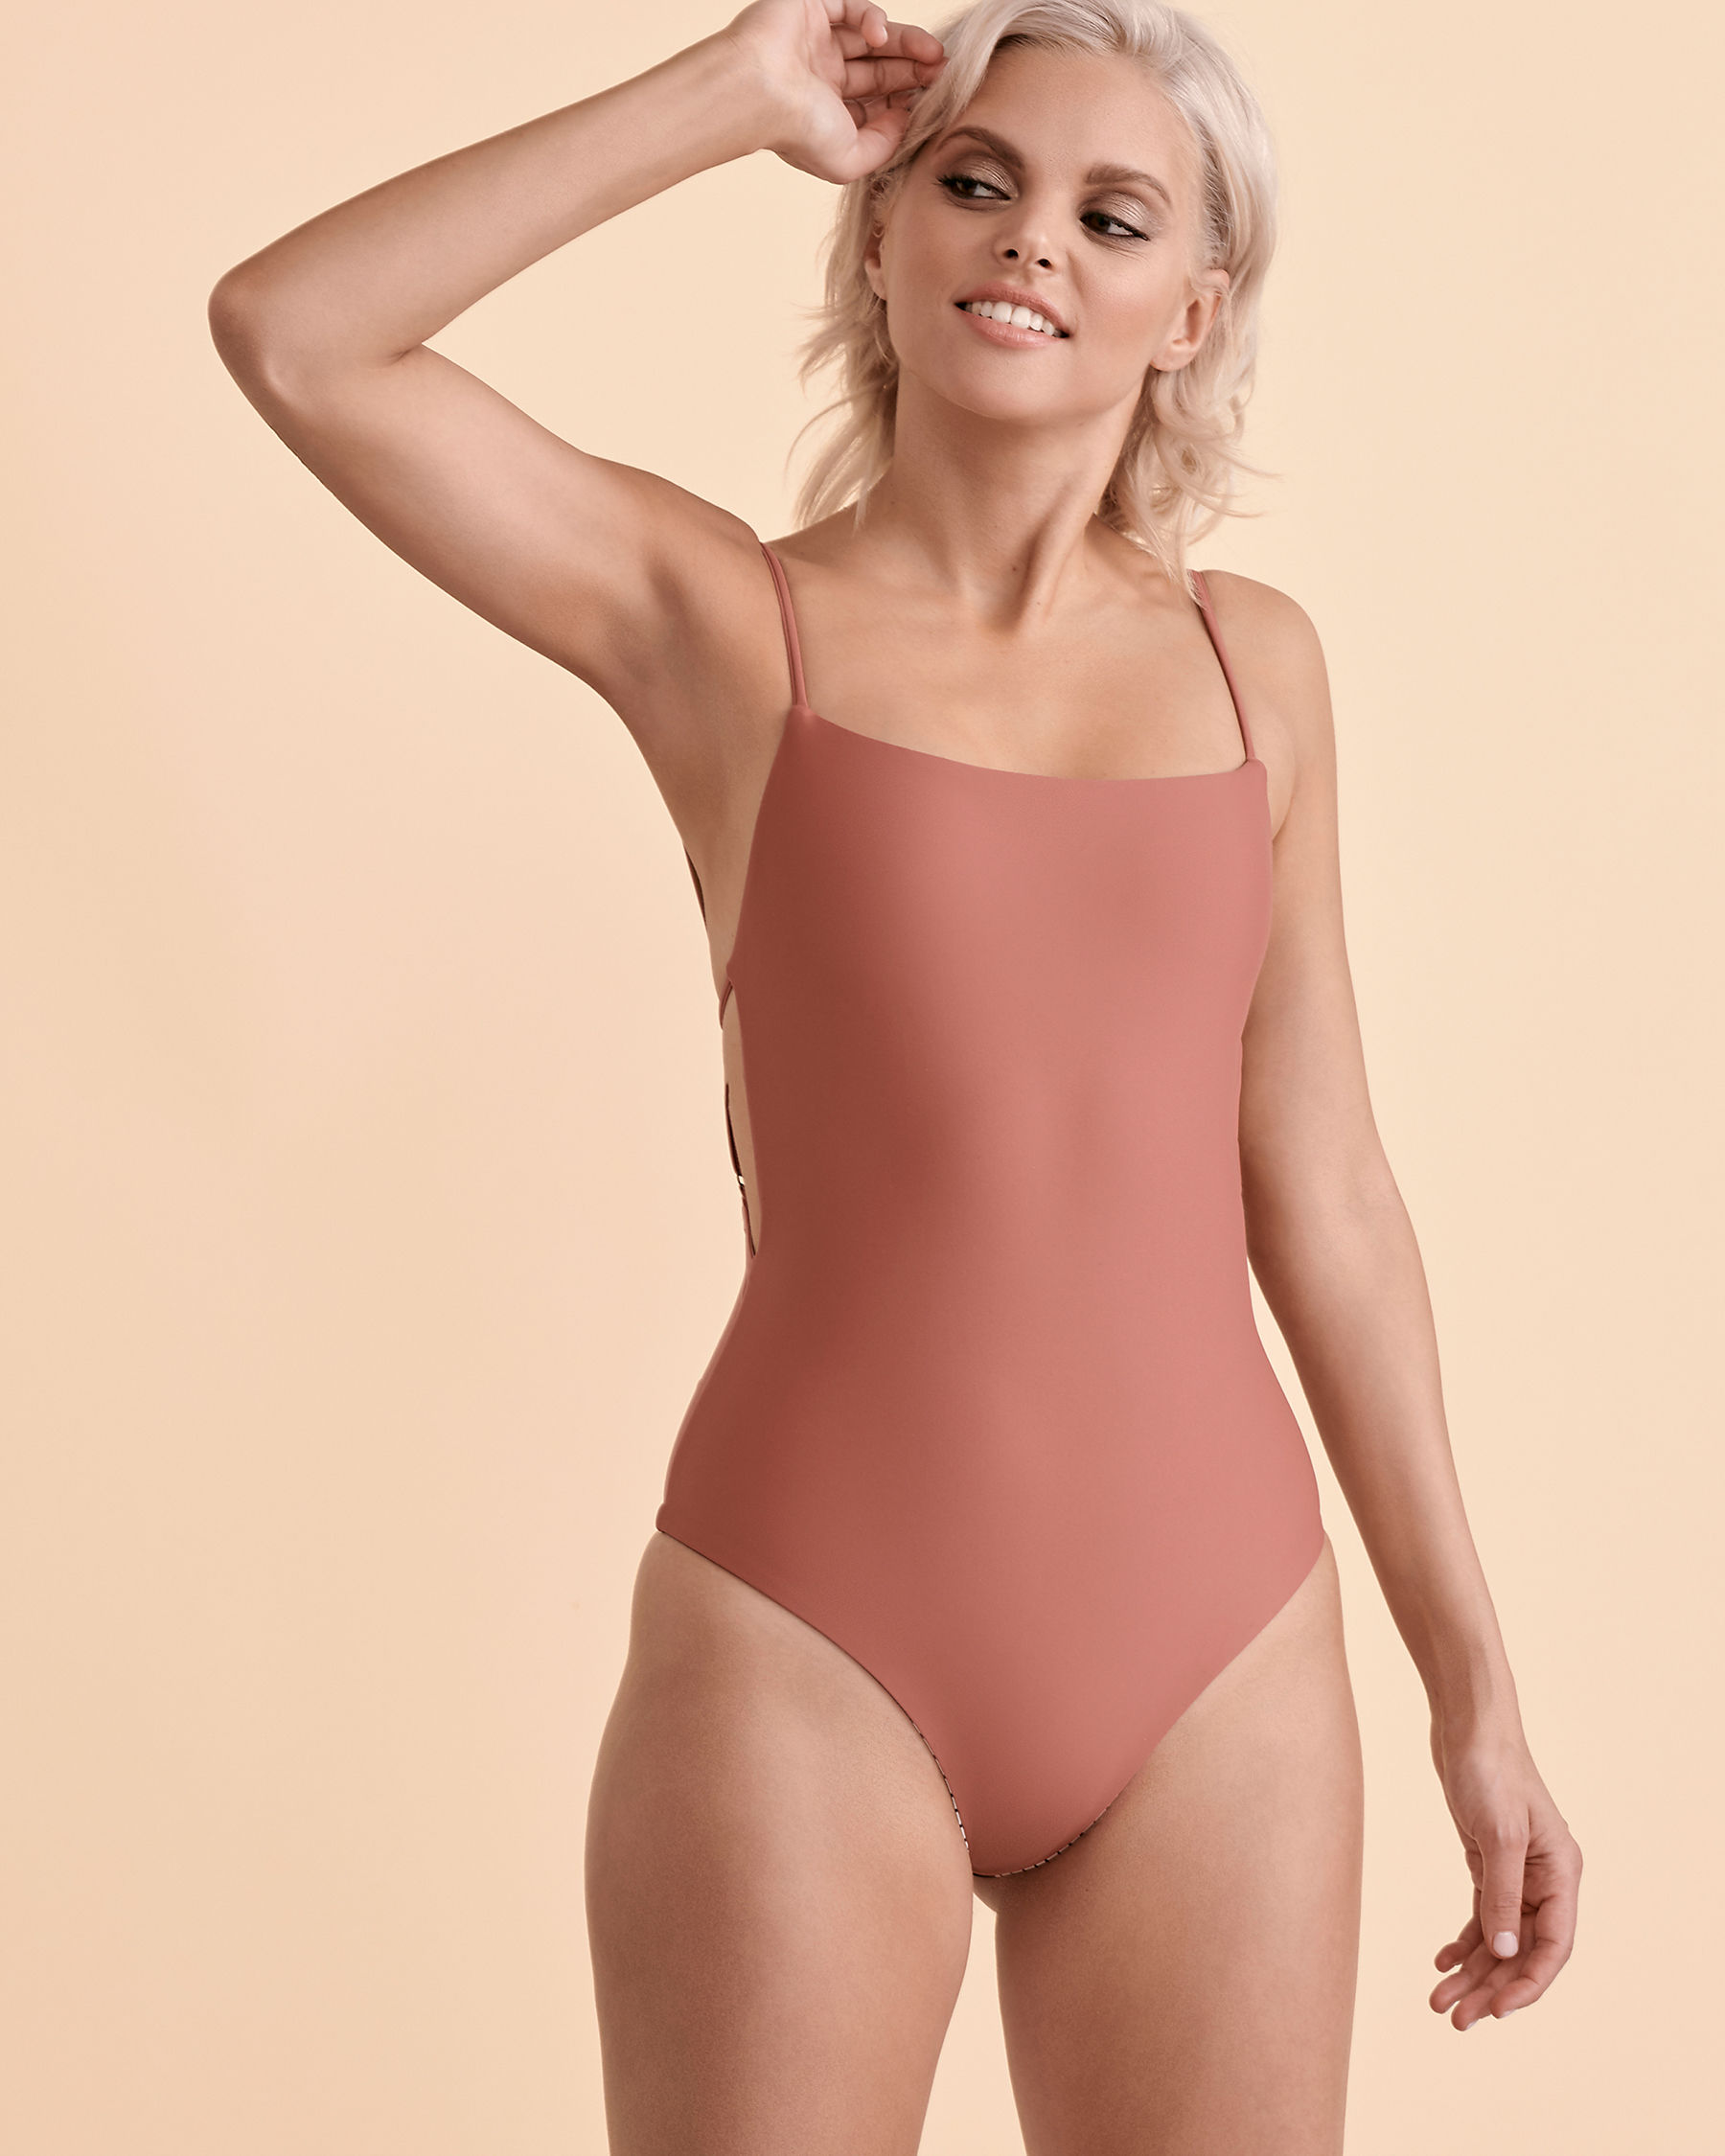 RIP CURL Reversible High Waist Cheeky One-piece Swimsuit Reversible GSIOX9 - View2